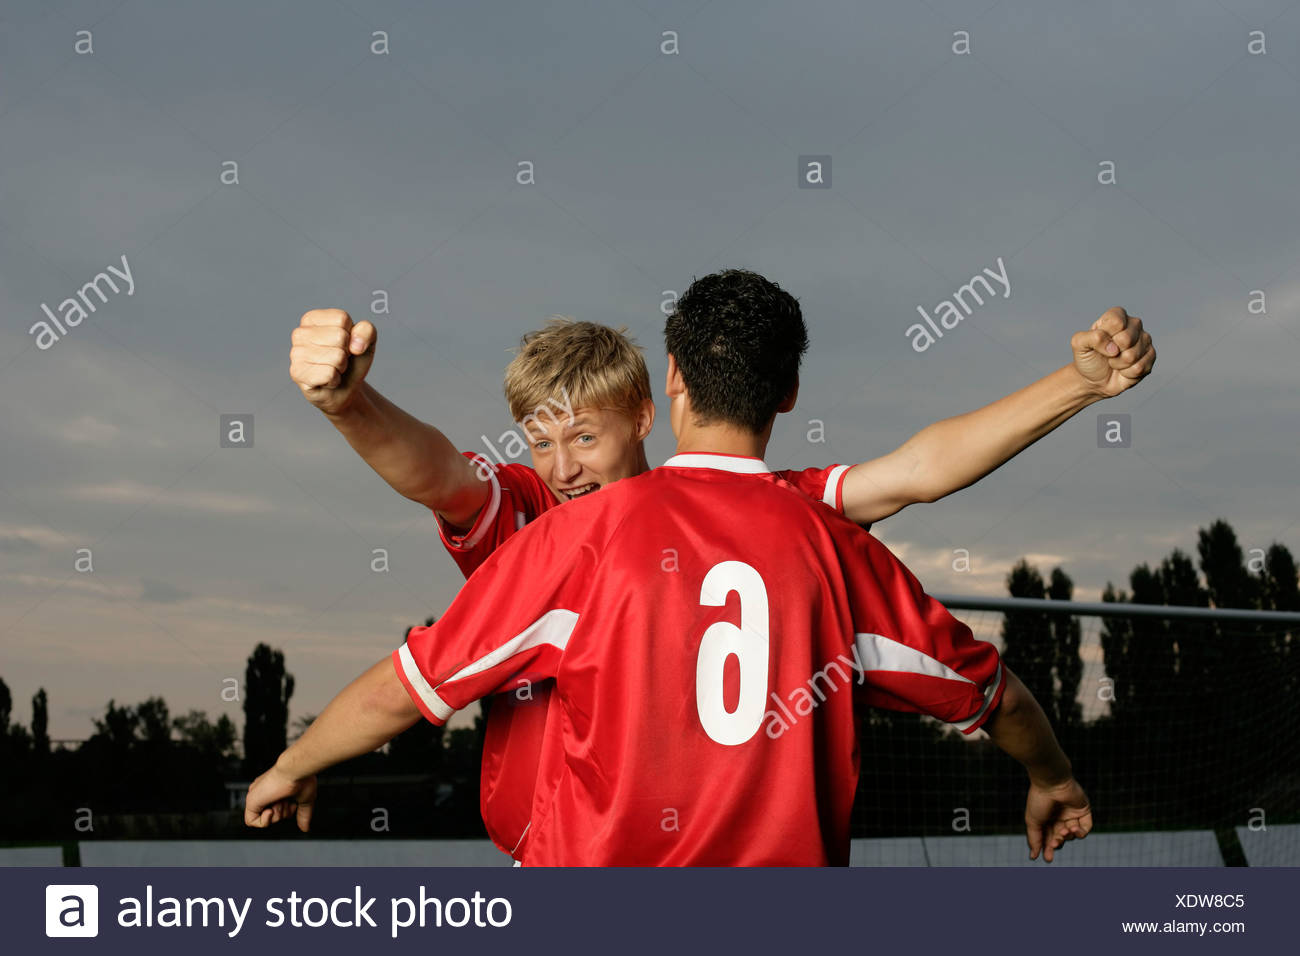 Soccer players jubilating - Stock Image